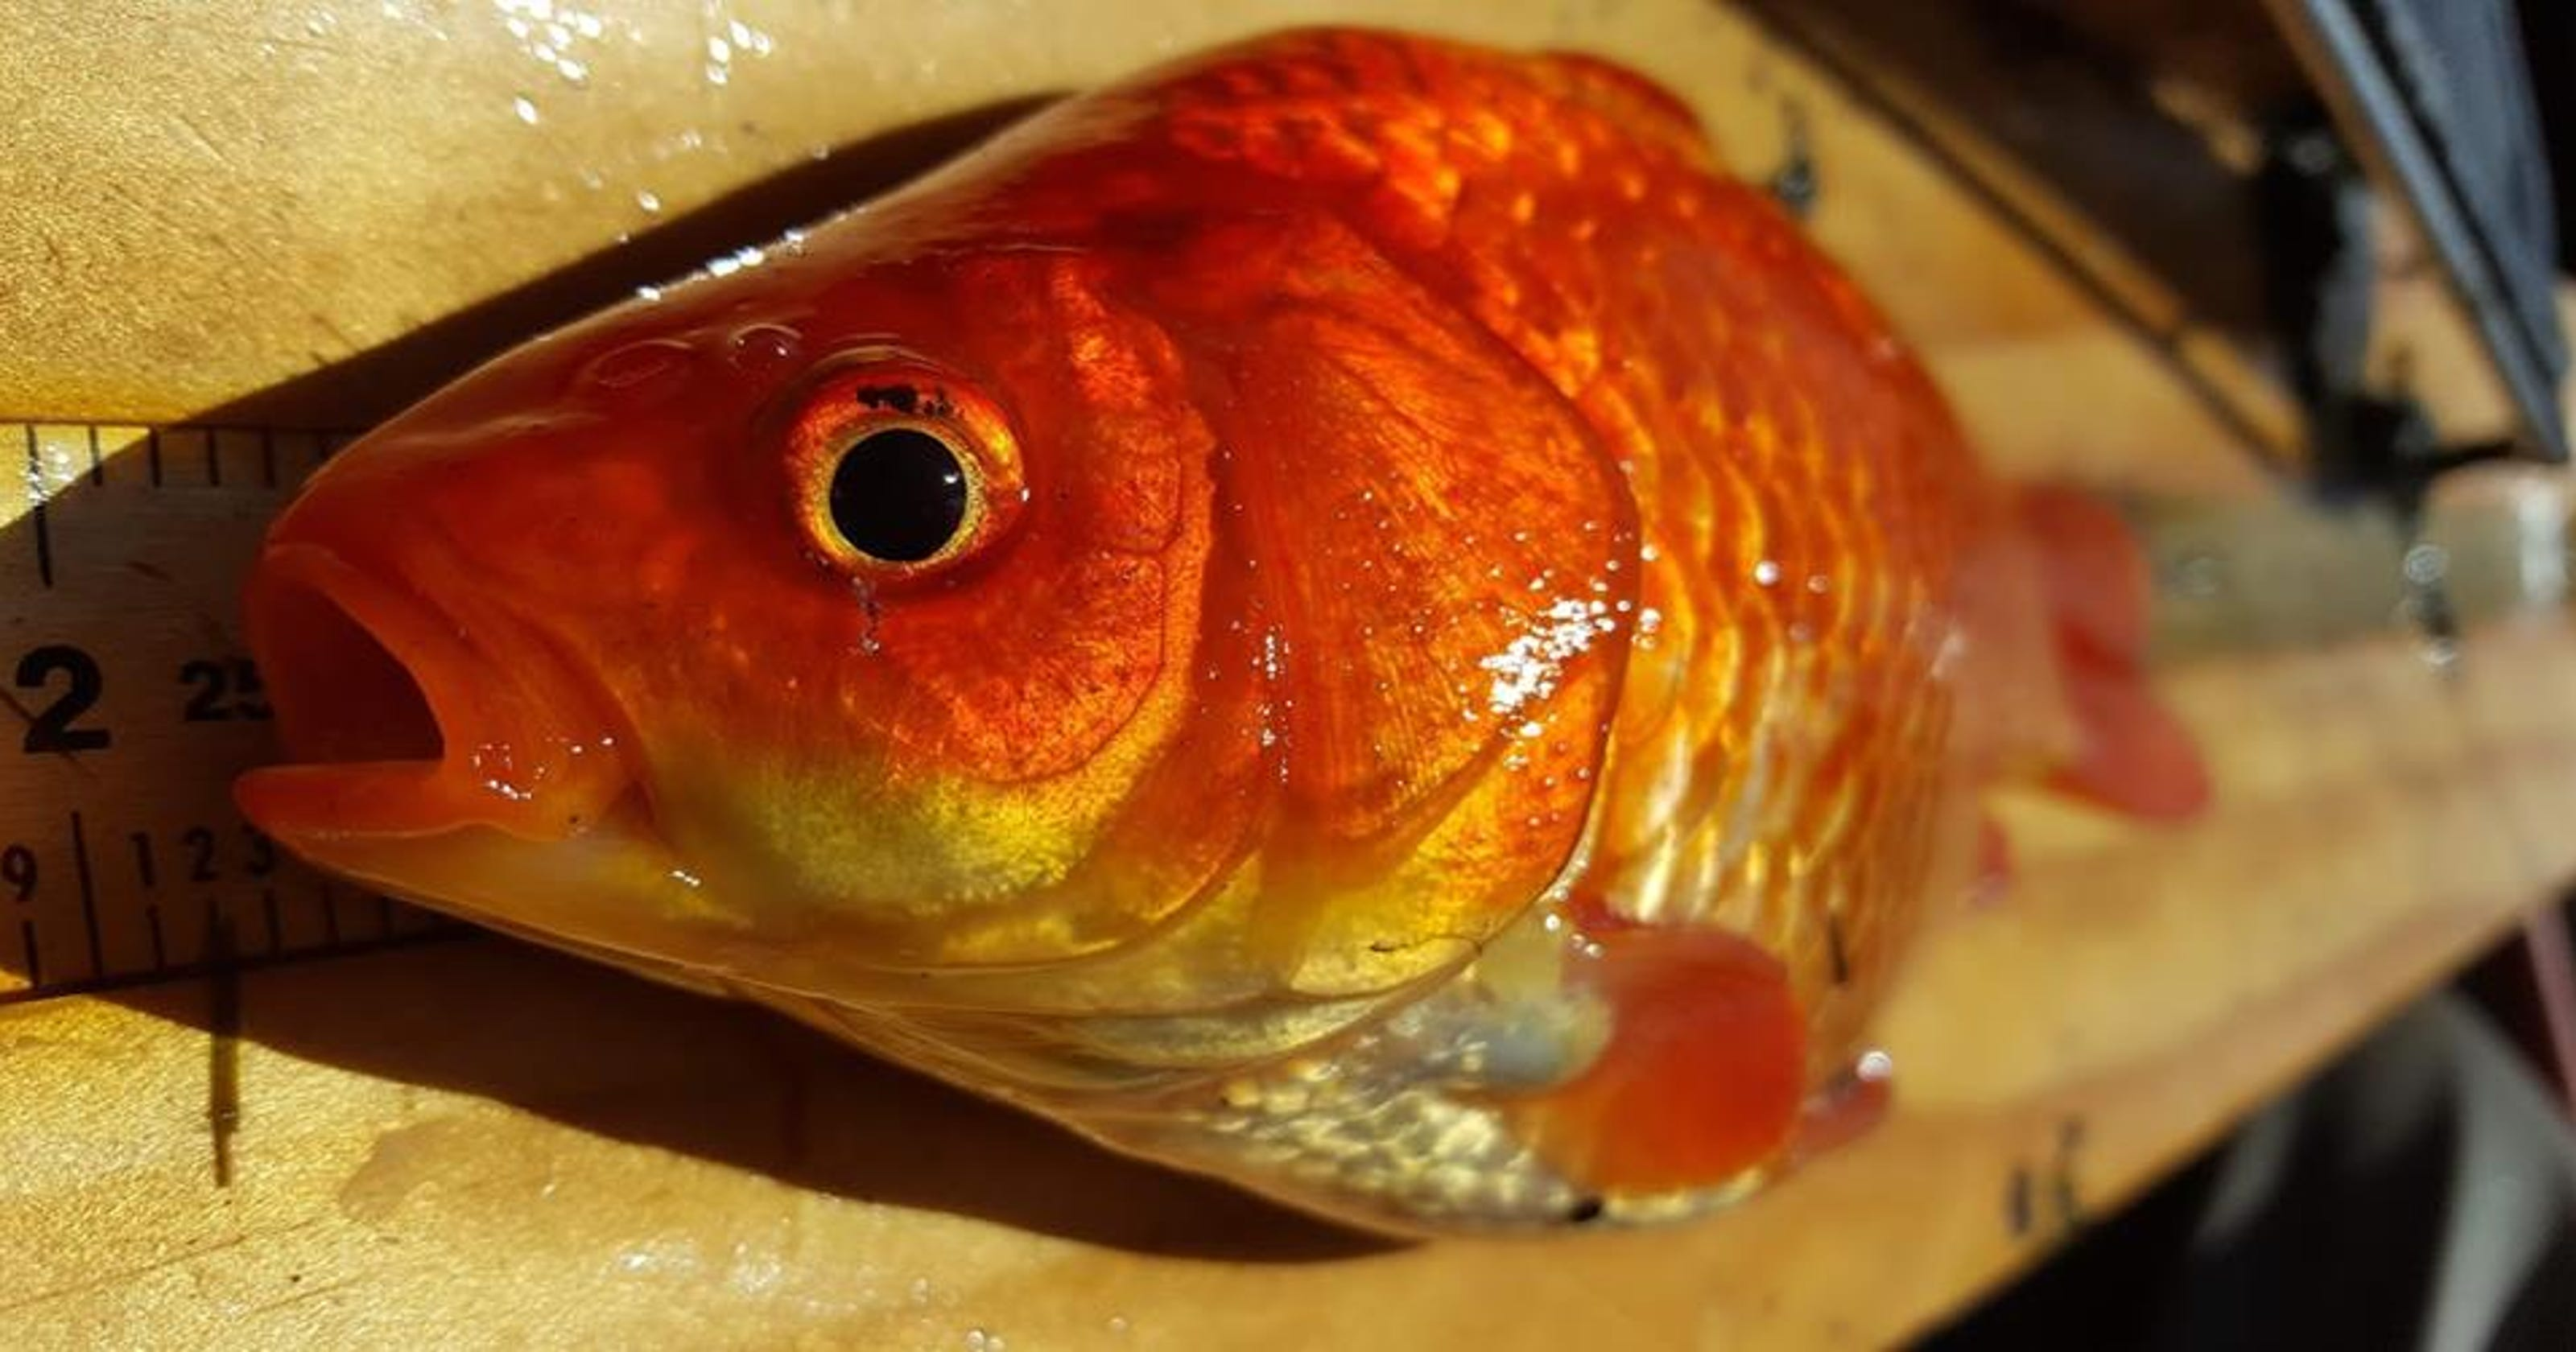 dnr explains why dumping goldfish in ponds or lakes makes them monsters